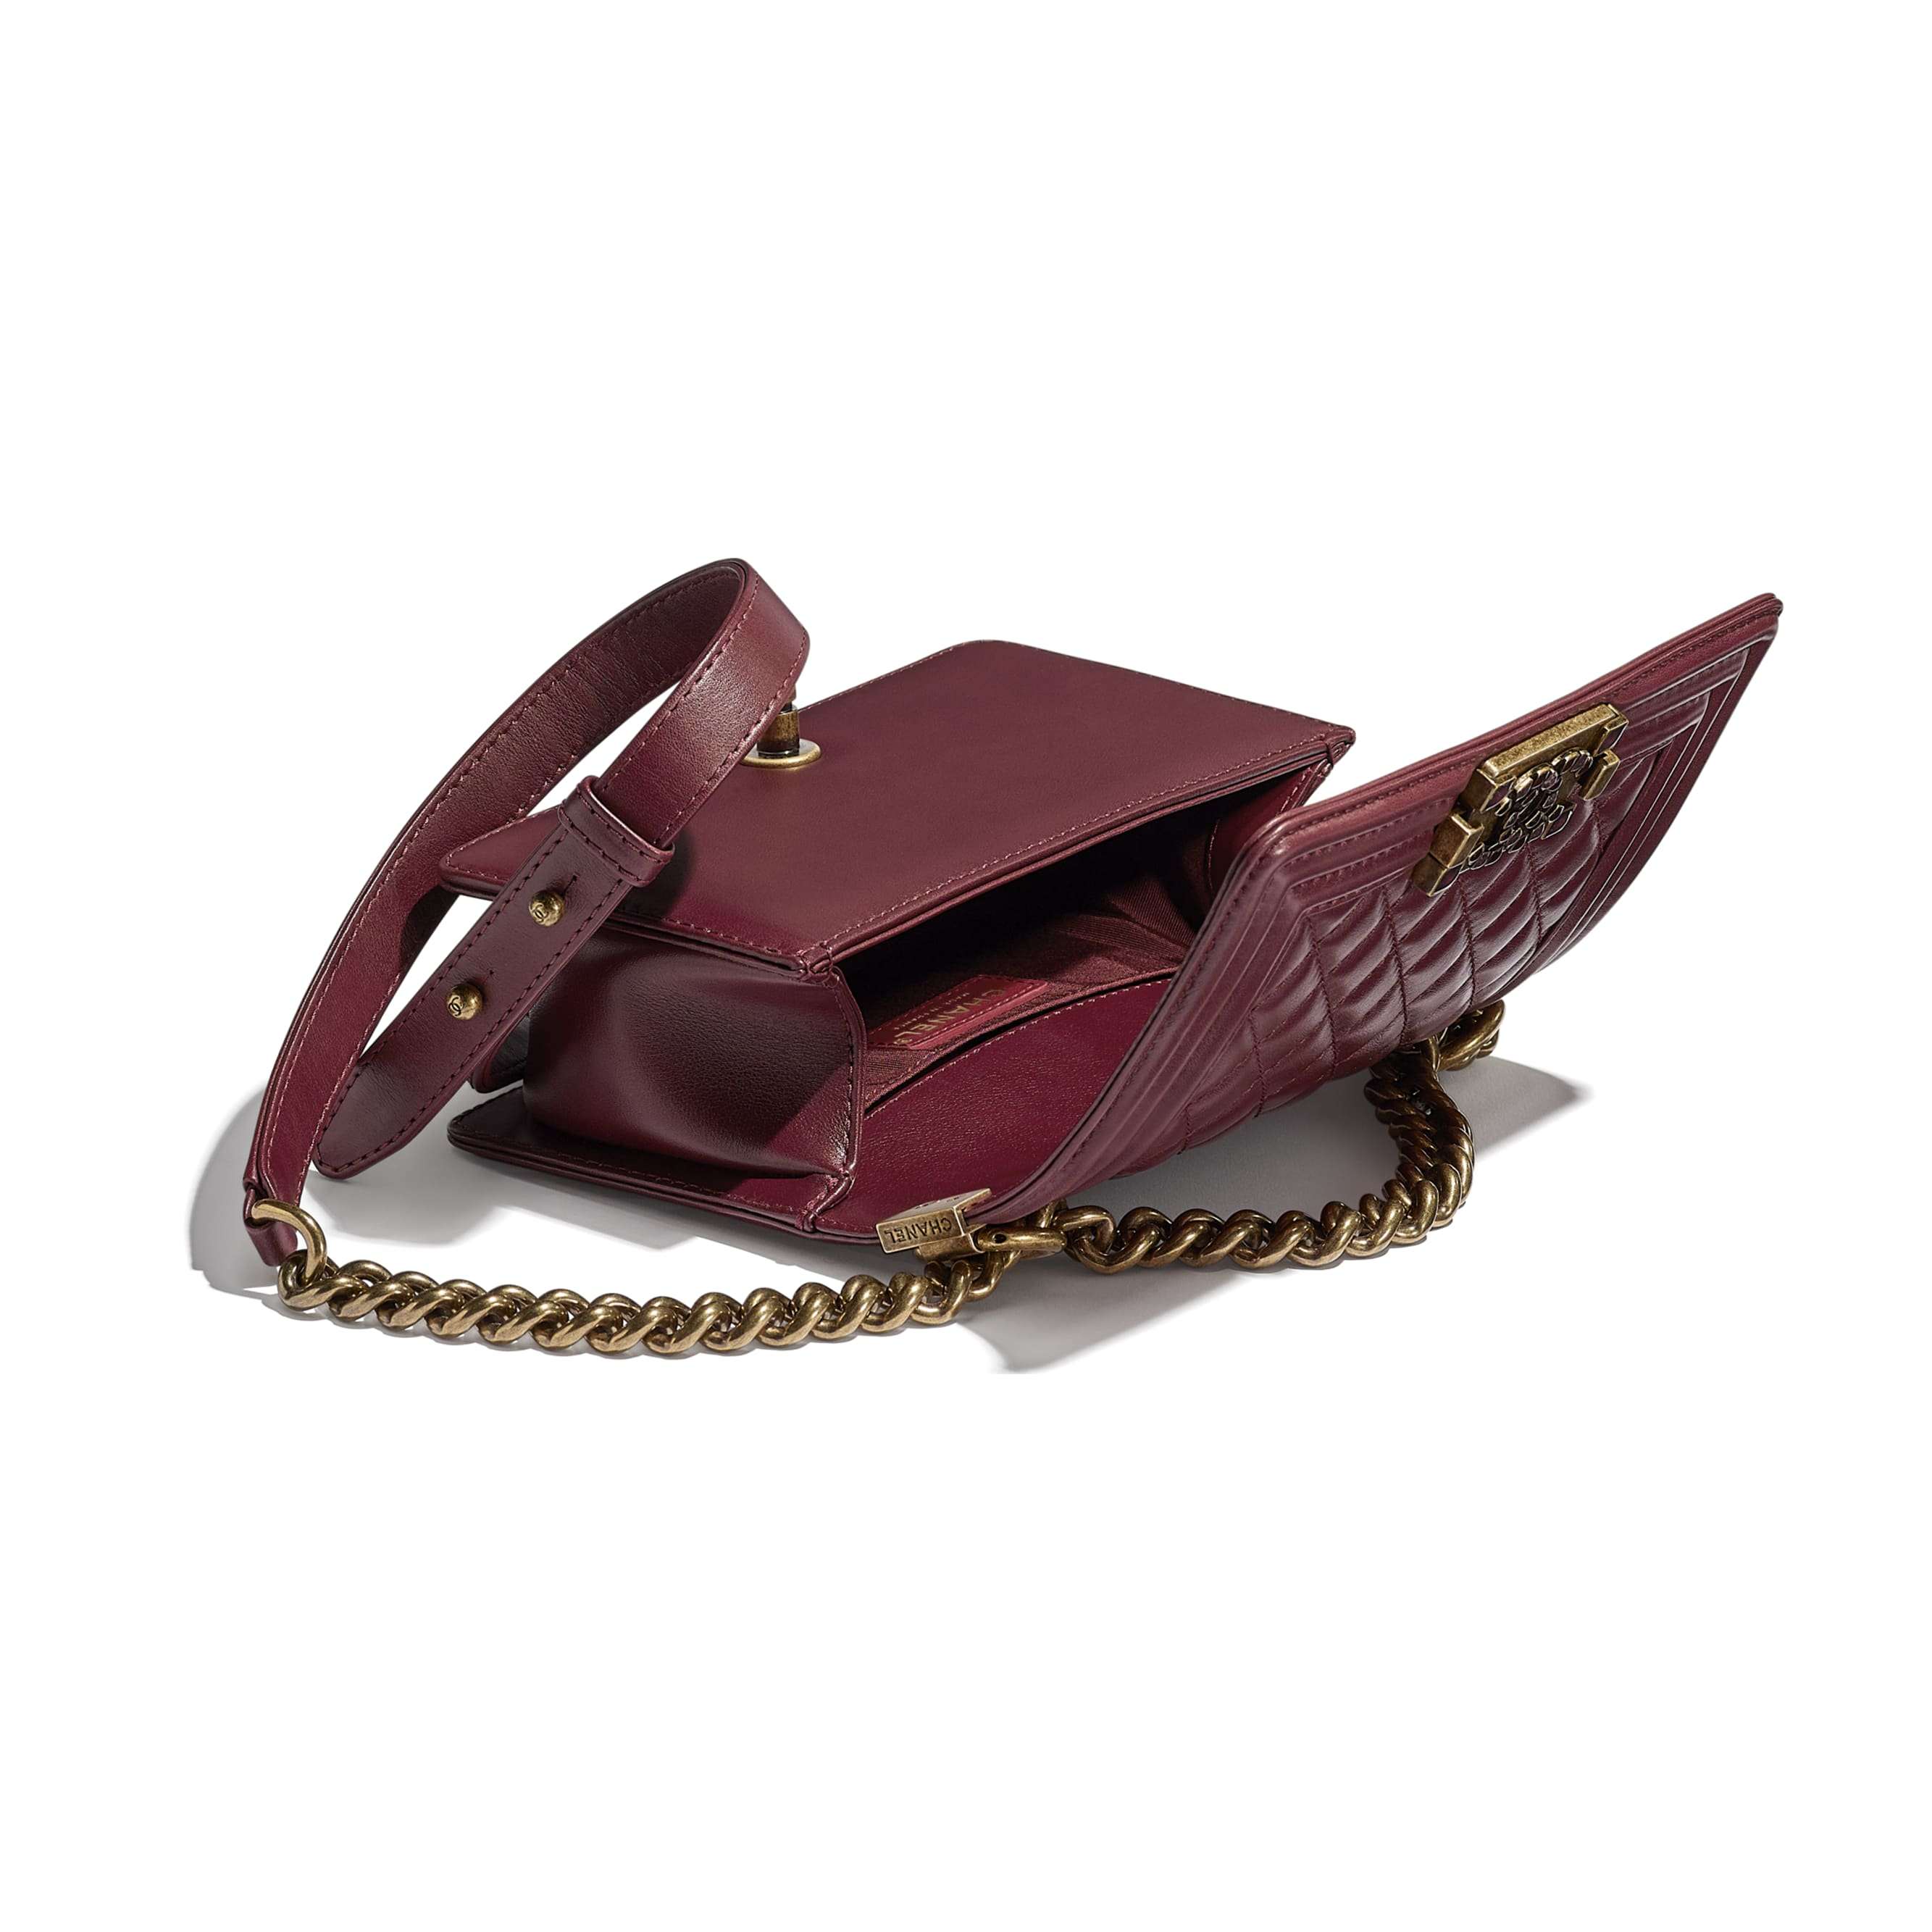 Small BOY CHANEL Handbag - Burgundy - Calfskin & Aged Gold-Tone Metal - CHANEL - Other view - see standard sized version